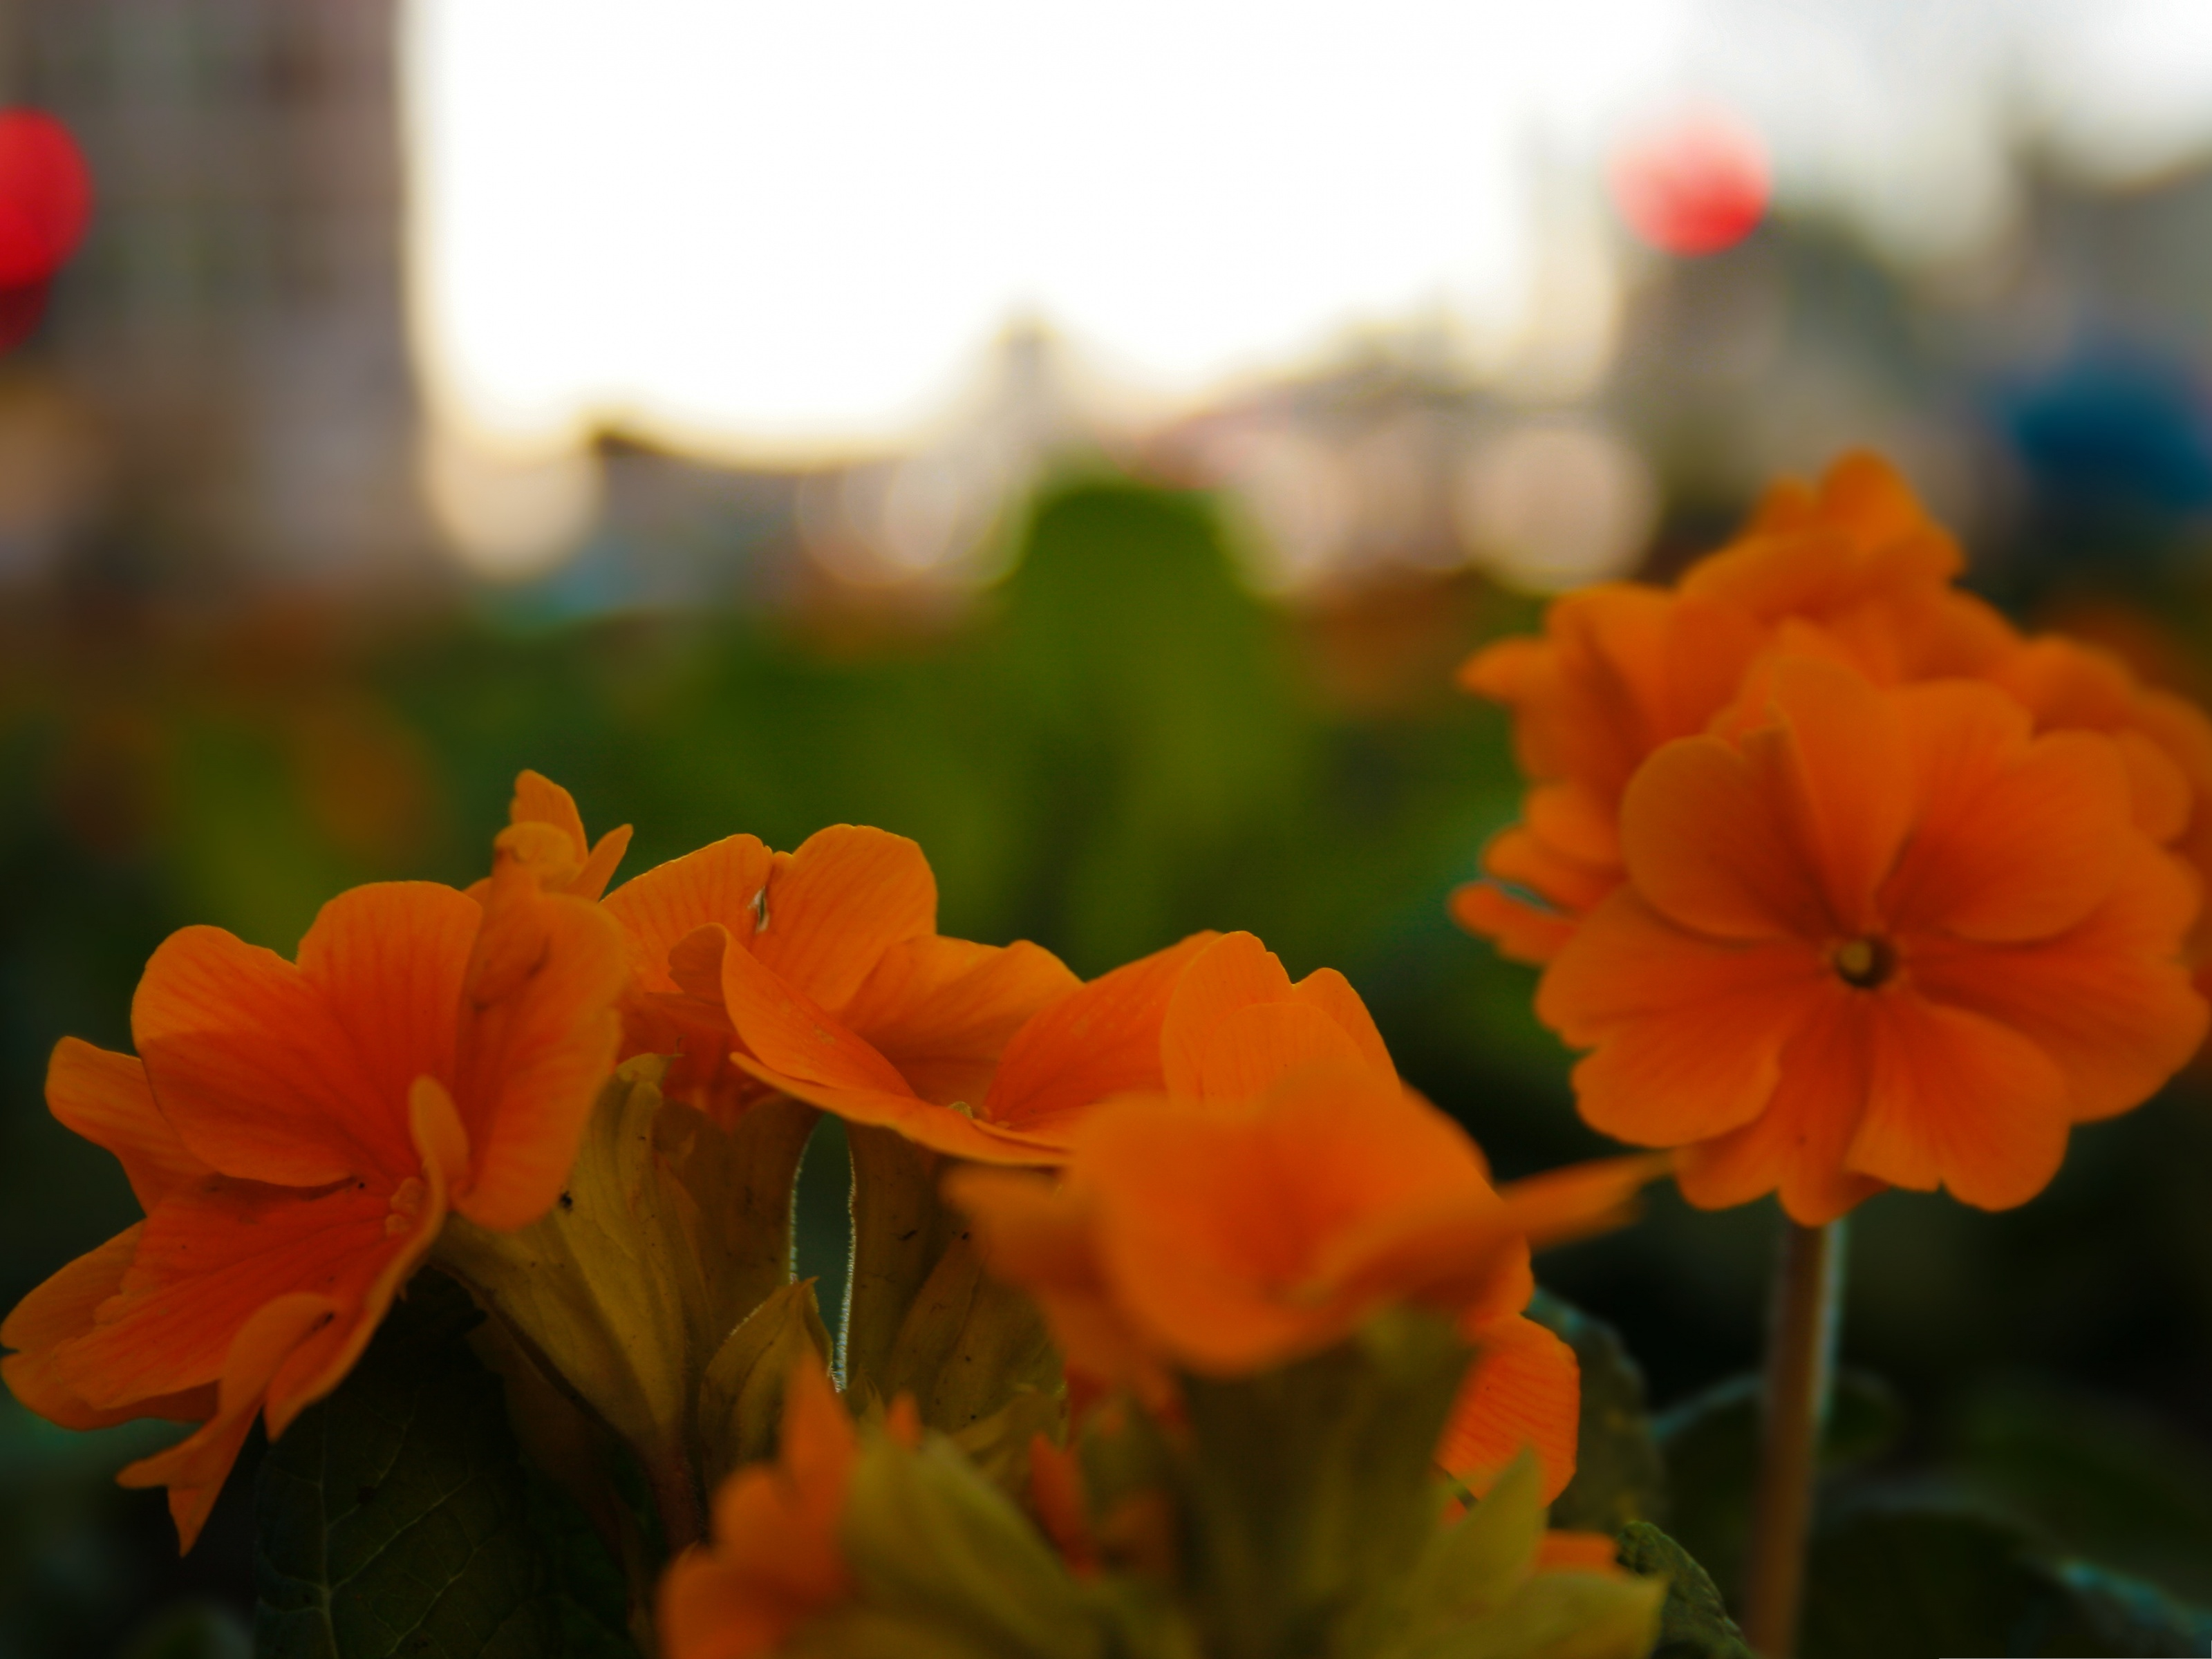 click to free download the wallpaper--Flowers At Blackfriars, Orange Flowers in Bloom, Green Background 3200X2400 free wallpaper download